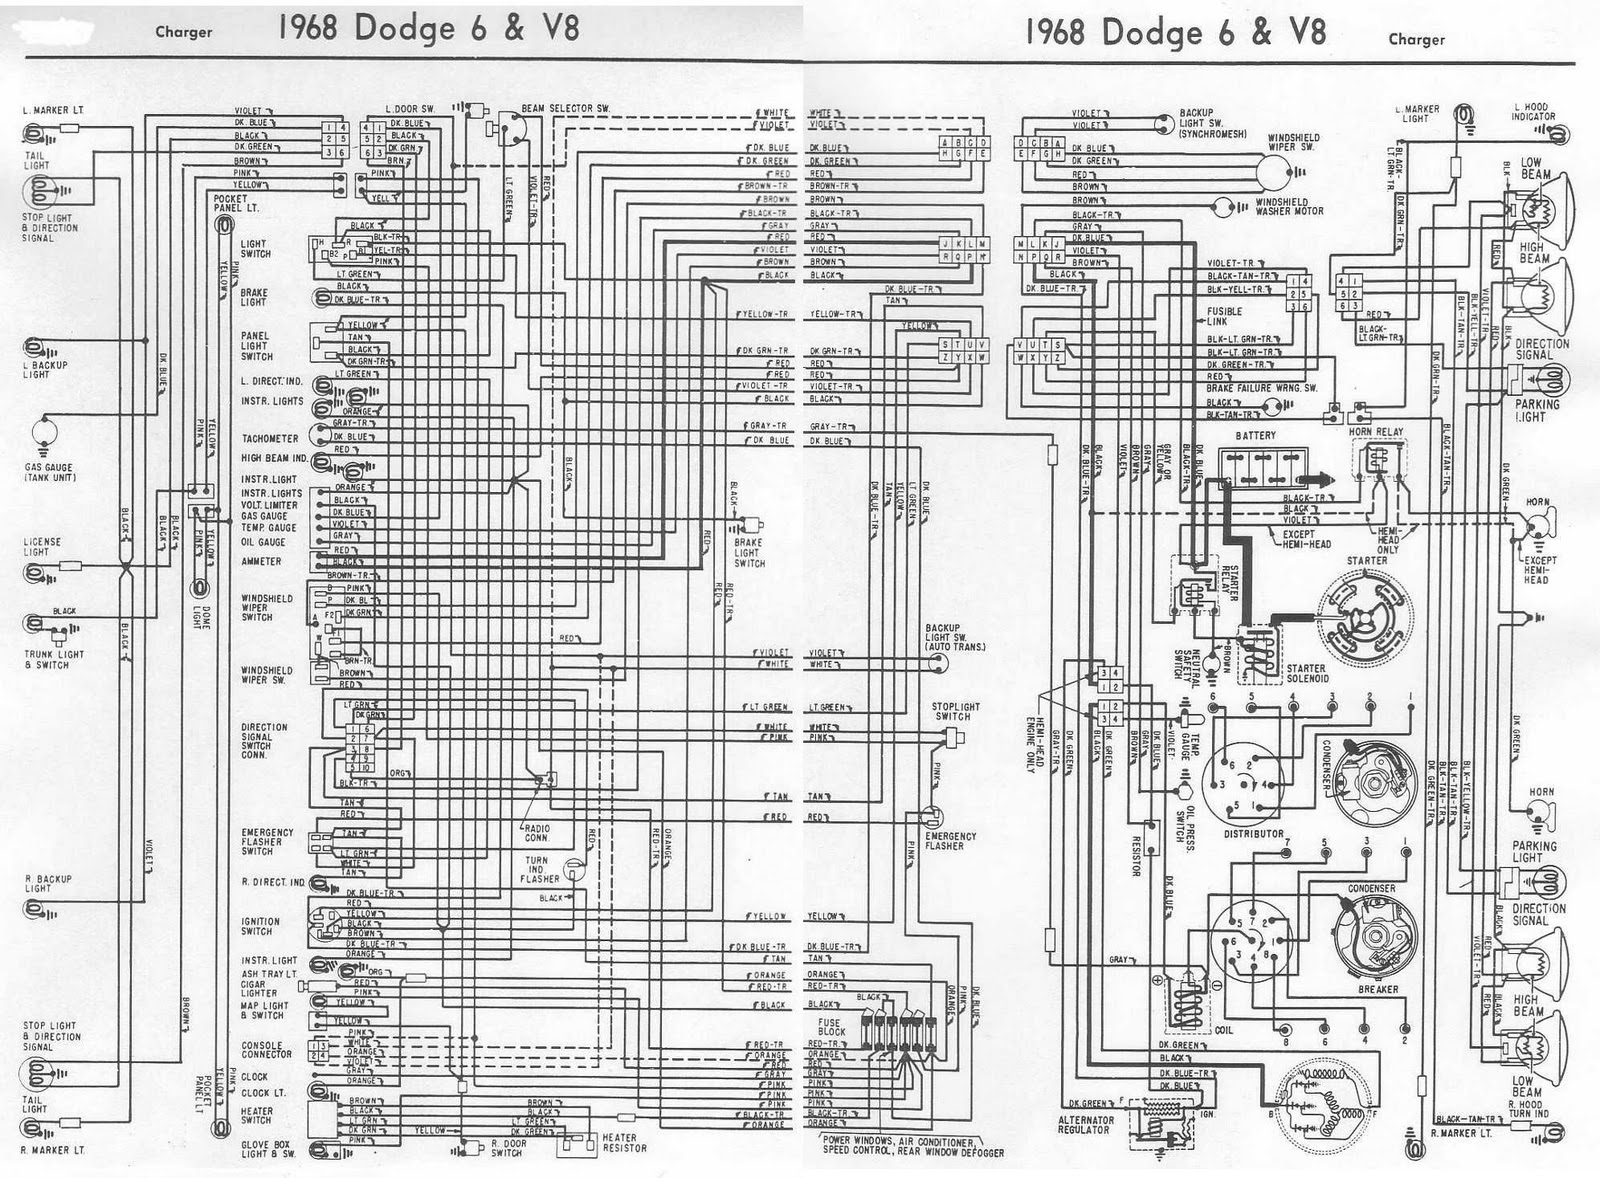 medium resolution of dodge charger 1968 6 and v8 complete electrical wiring diagram all about wiring diagrams 1967 chevy impala wiring diagram dodge ram alternator wiring